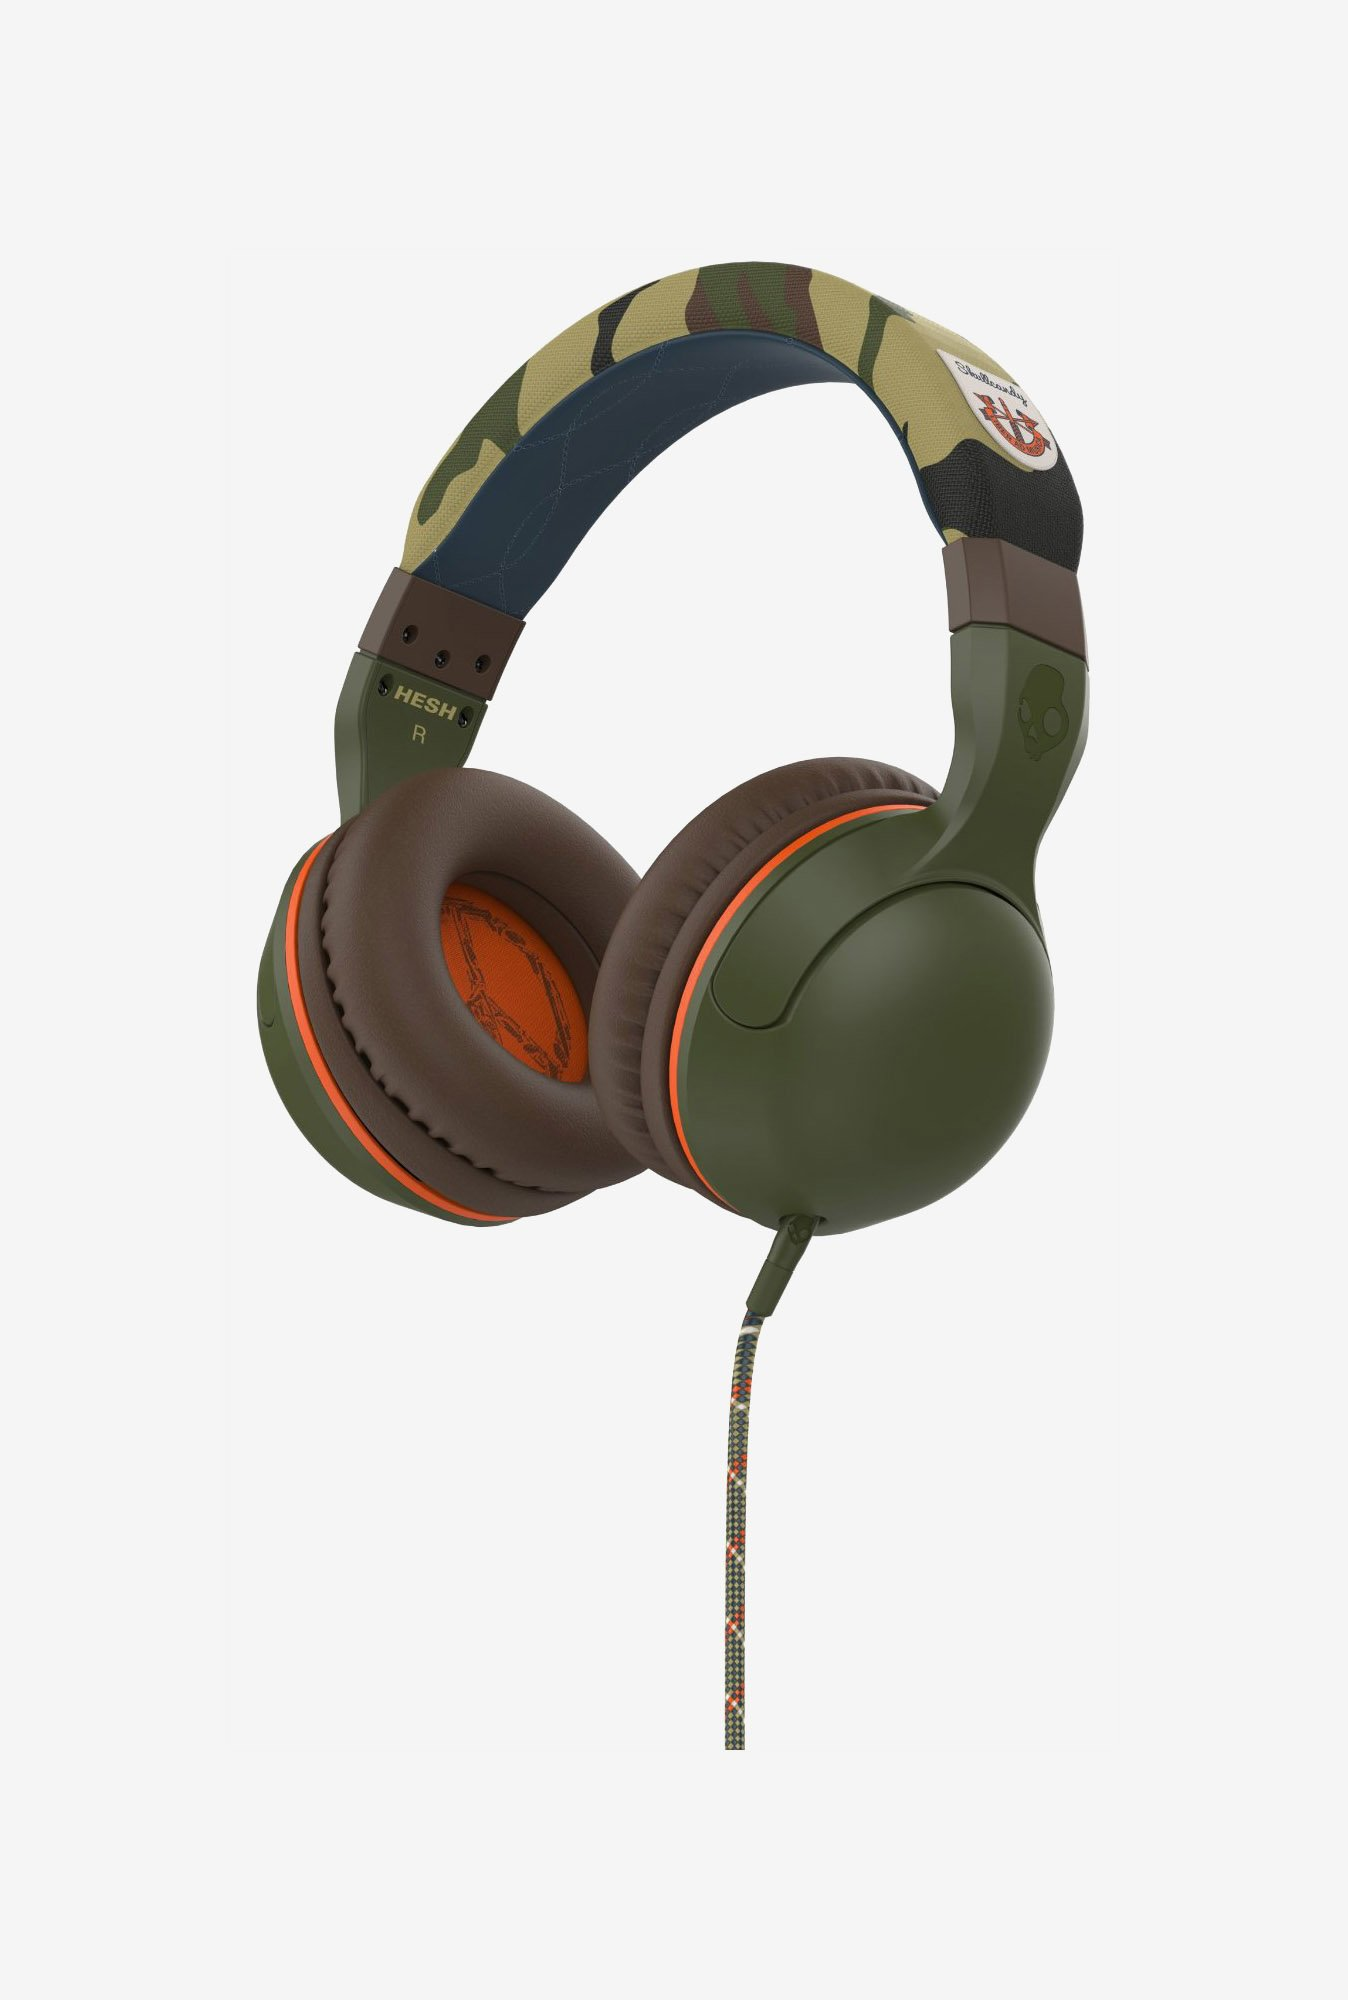 Skullcandy Hesh 2.0 S6HSGY-367 Over Ear Headphone Camo